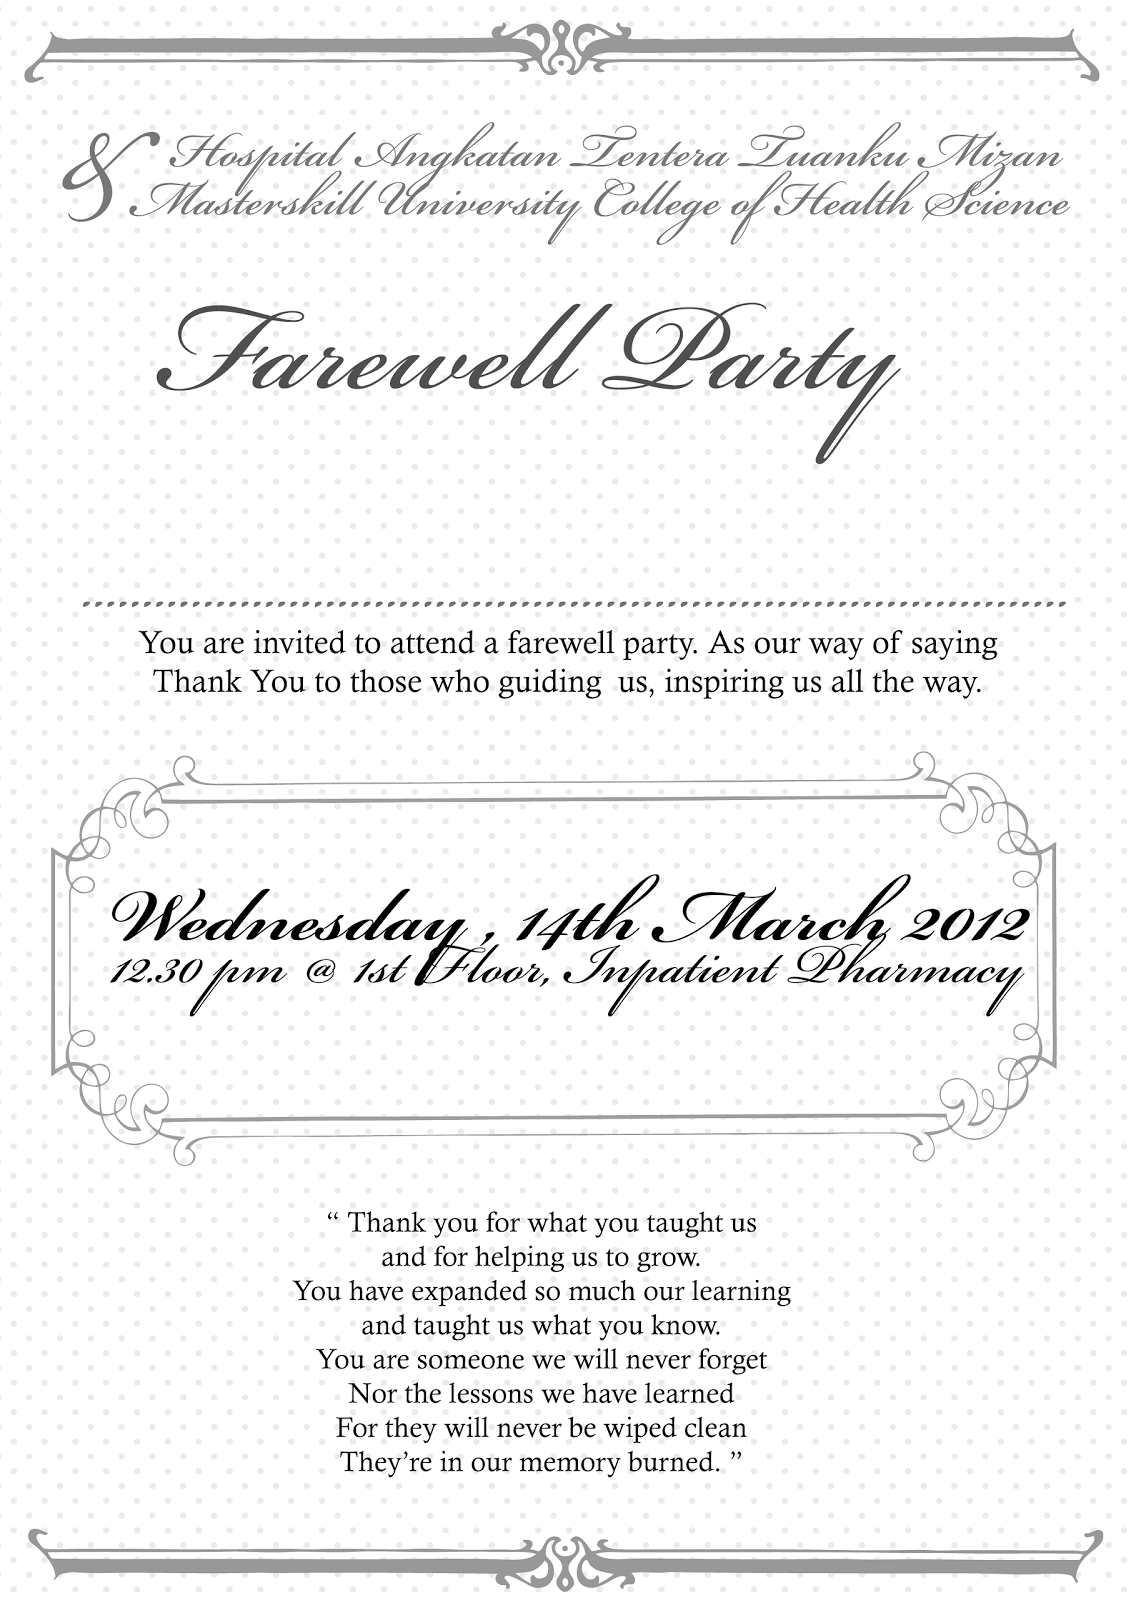 thebigtree: Invitation Card - Farewell Party